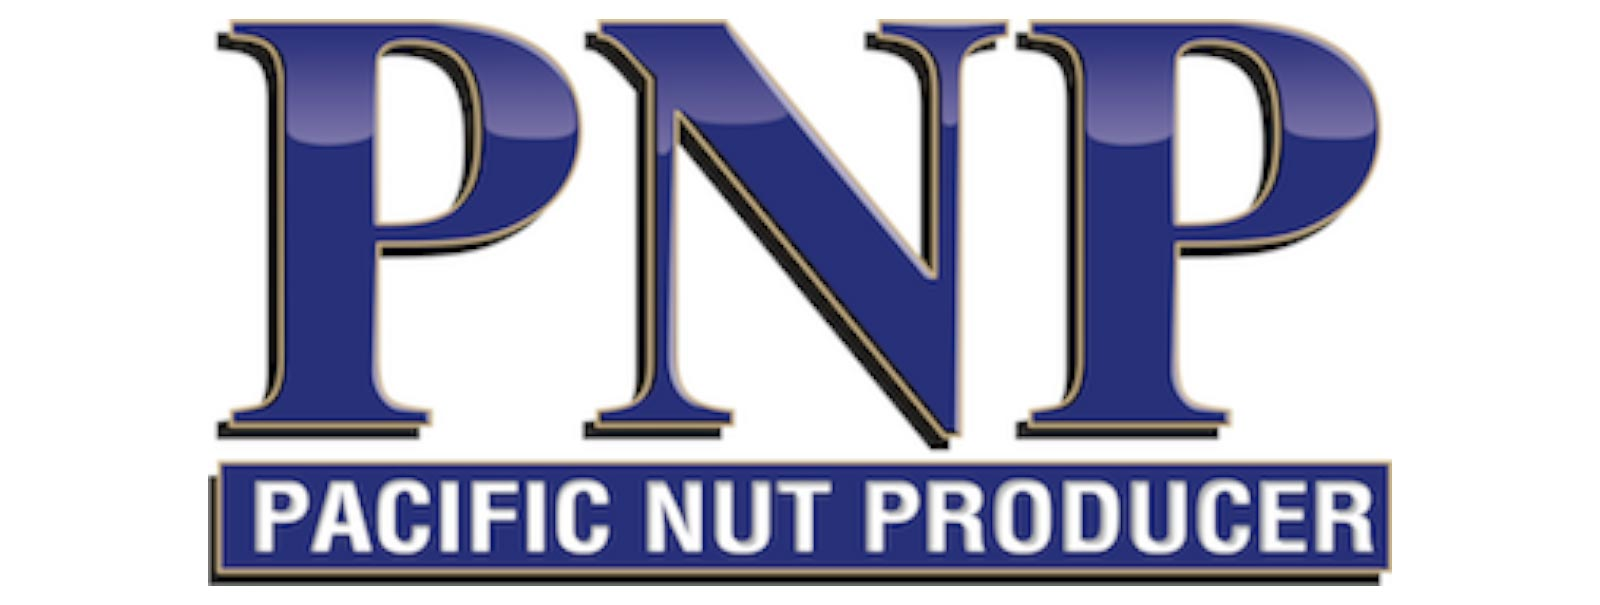 Pacific Nut Producer